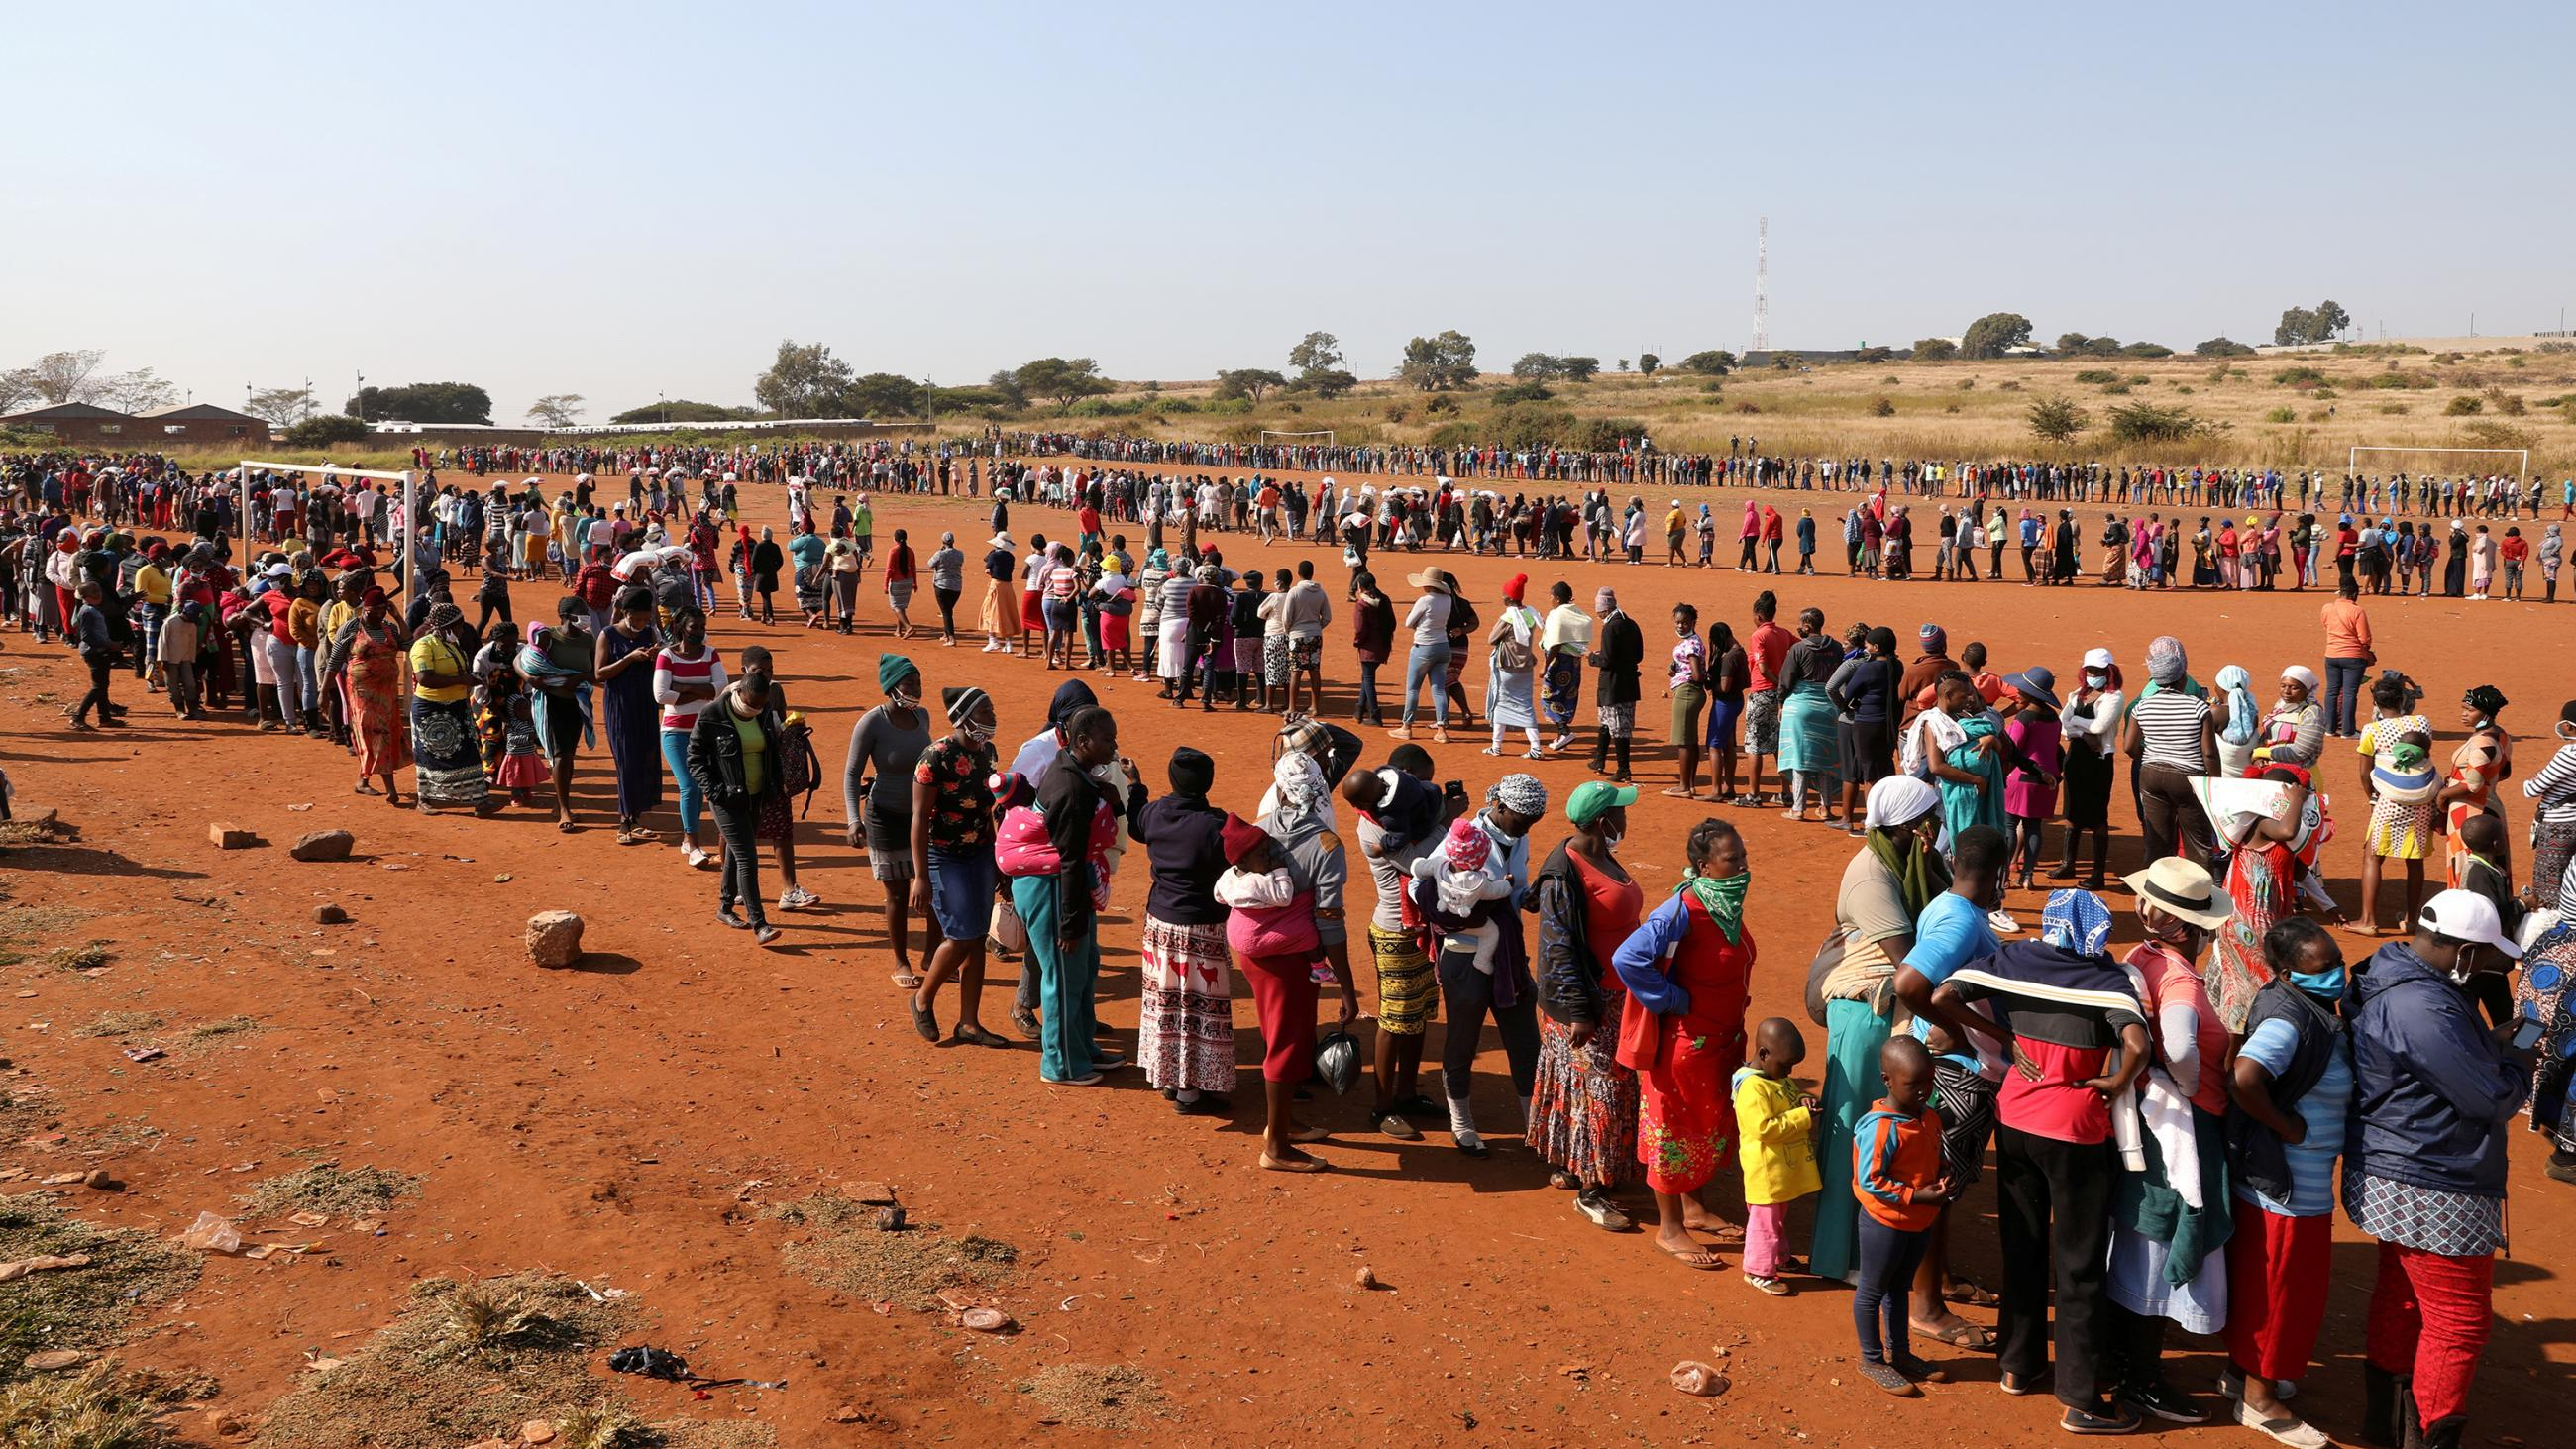 The photo is taken from a high vantage overlooking a huge crowd of people standing on line in a red soil dry plain.